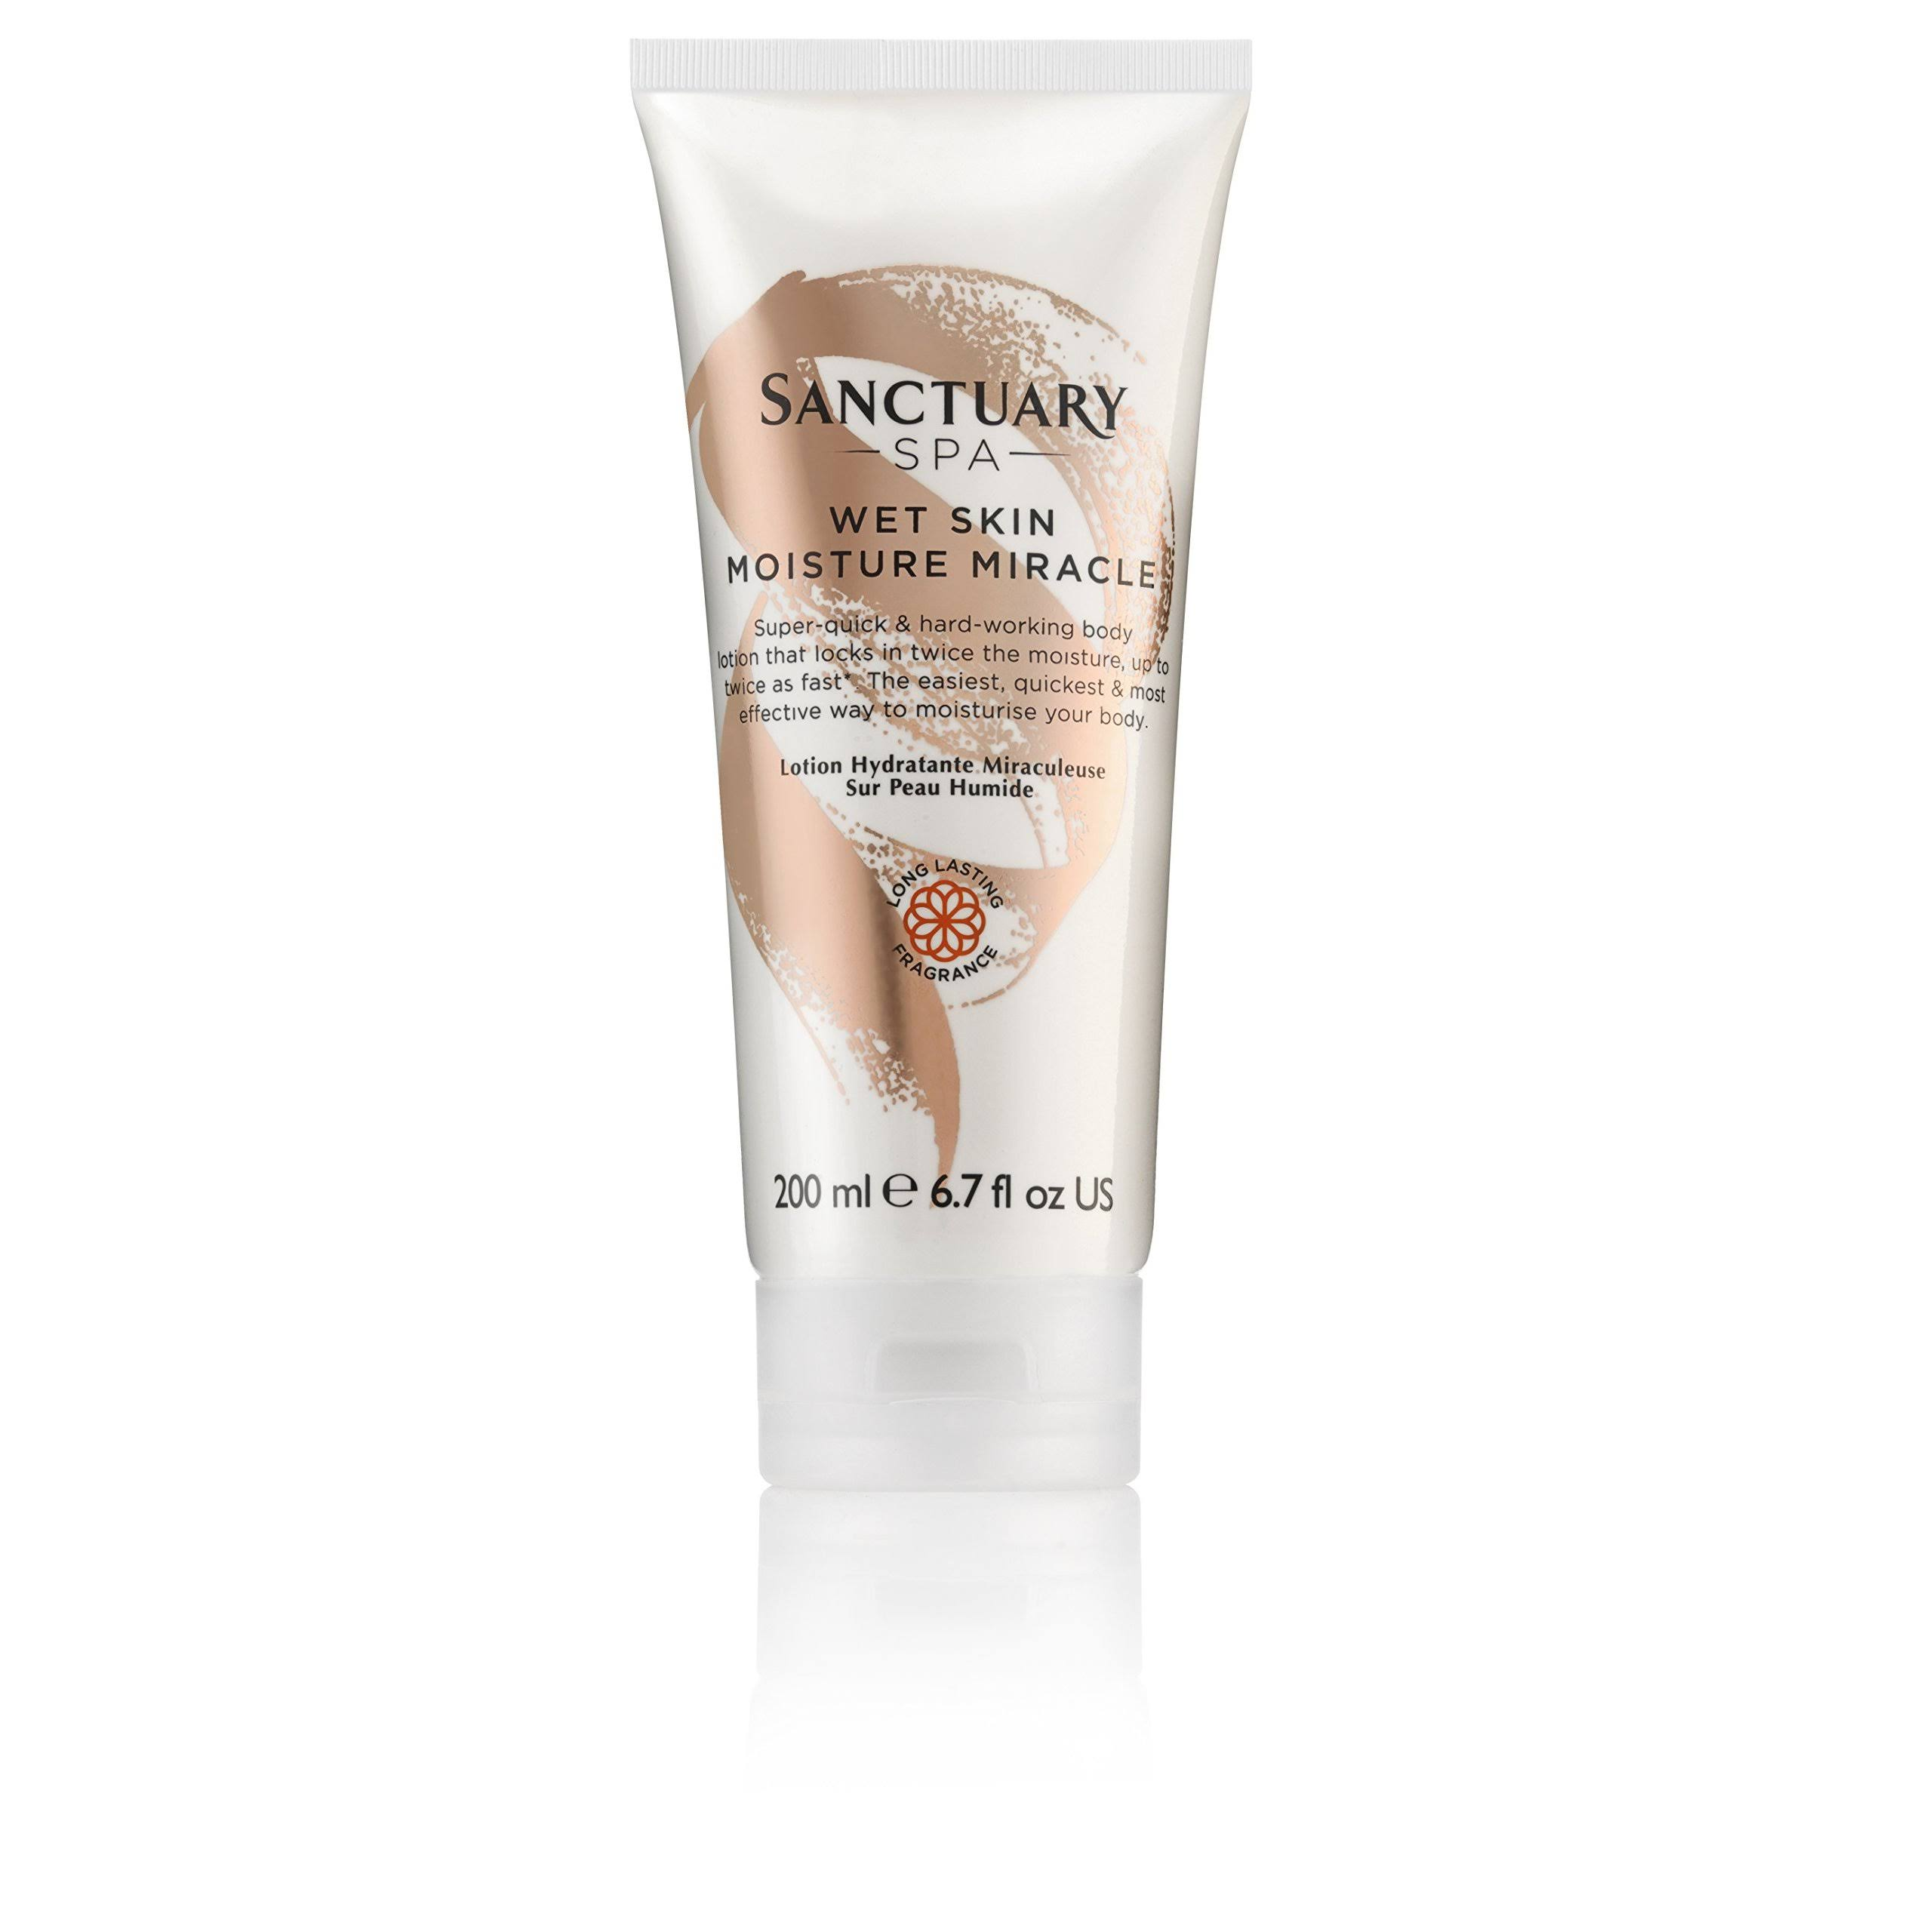 Sanctuary Spa Wet Skin Moisture Miracle Lotion - 200ml